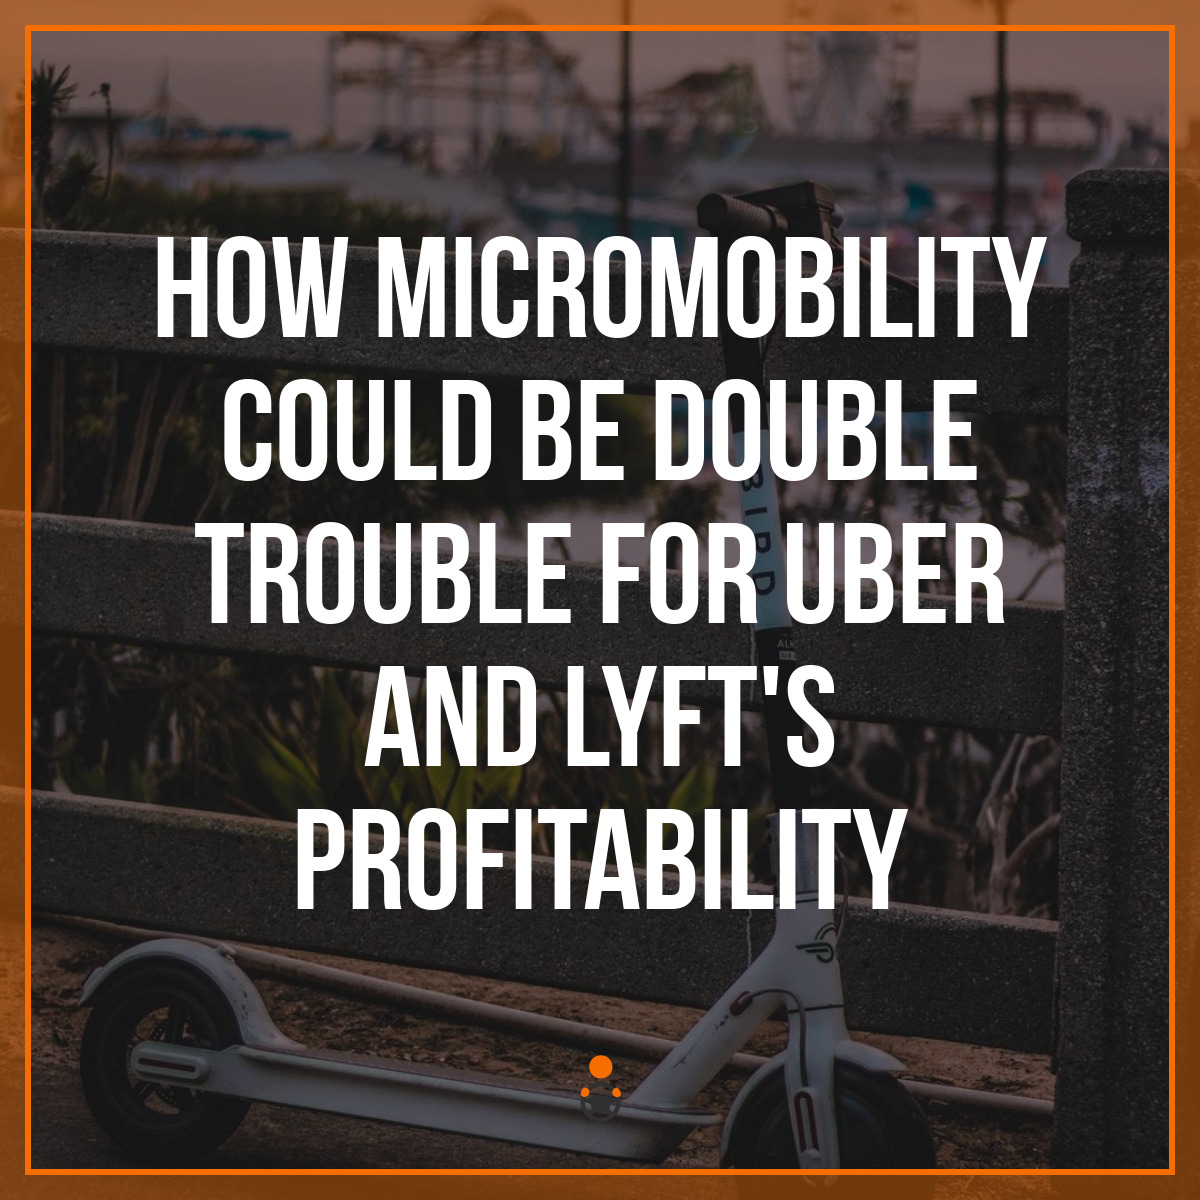 How Micromobility Could Be Double Trouble for Uber and Lyft's Profitability